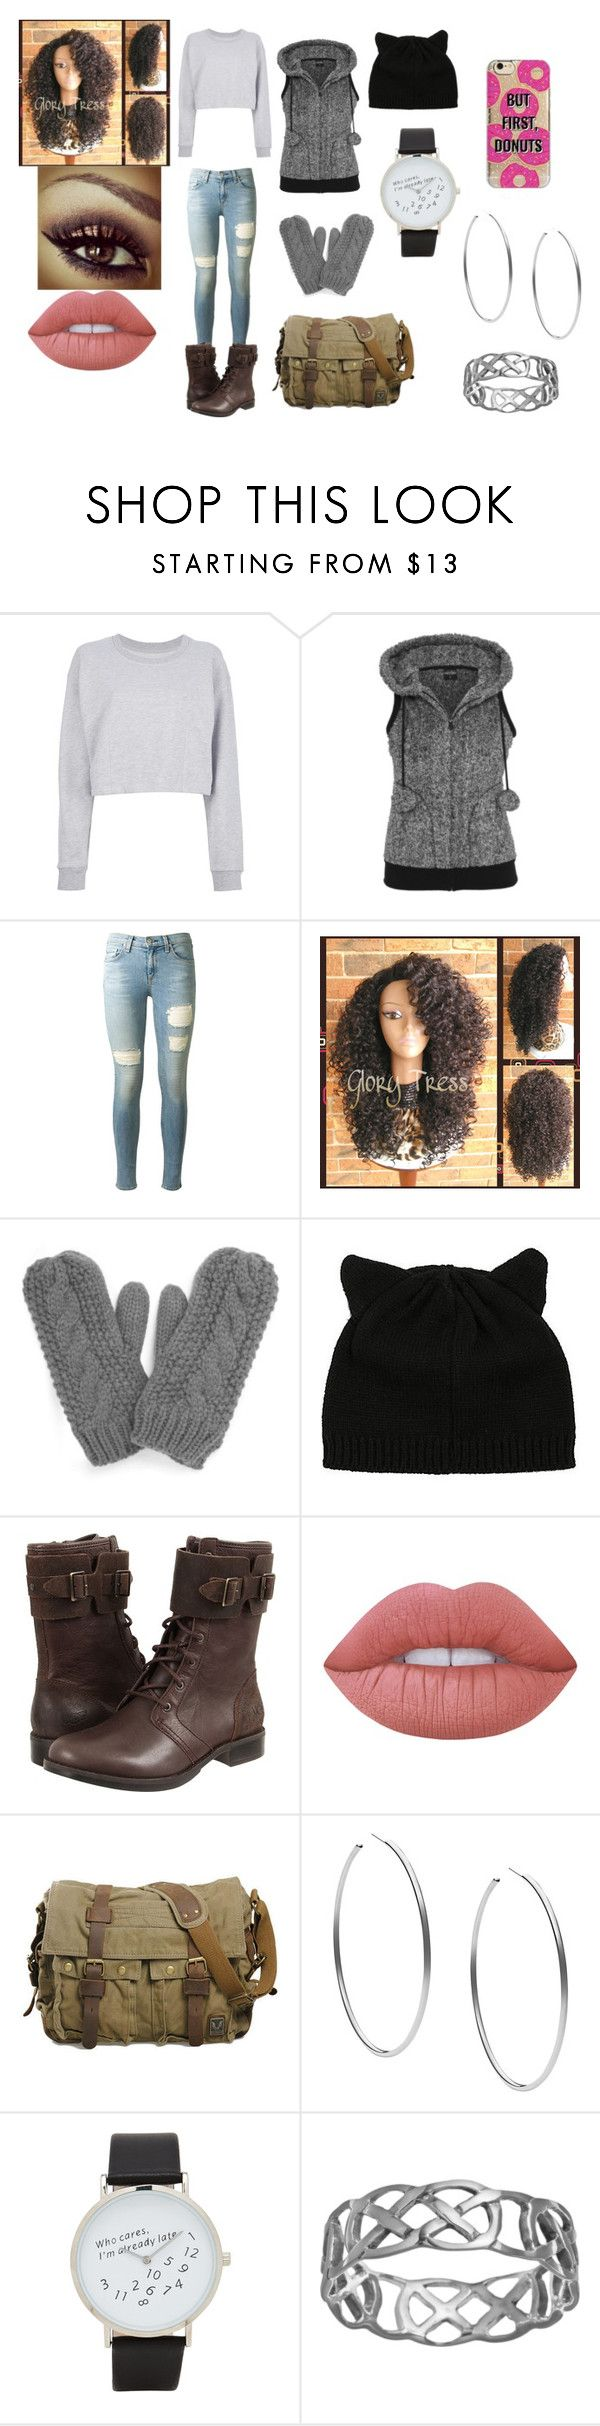 """""""Rosalie"""" by shady-soilder ❤ liked on Polyvore featuring Maison Margiela, rag & bone, French Connection, UGG Australia, Lime Crime, Michael Kors, ALDO and Agent 18"""